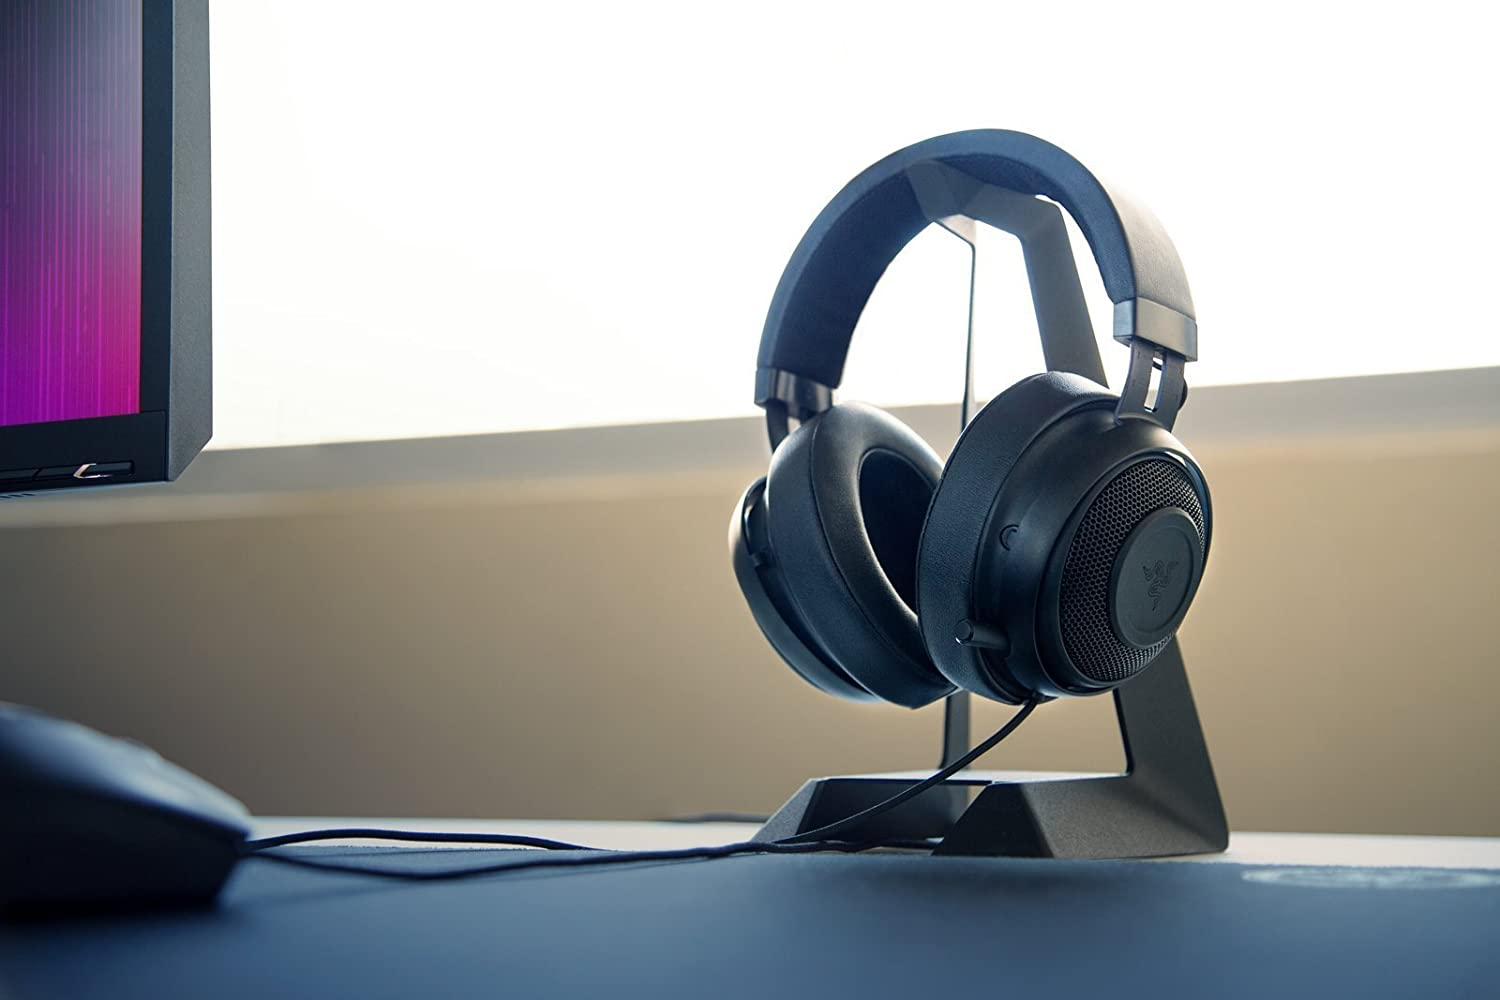 Renewed Oval Ear Cushions 7.1 Surround Sound with Retractable Digital Microphone and Chroma Lighting Razer Kraken 7.1 Chroma V2 USB Gaming Headset